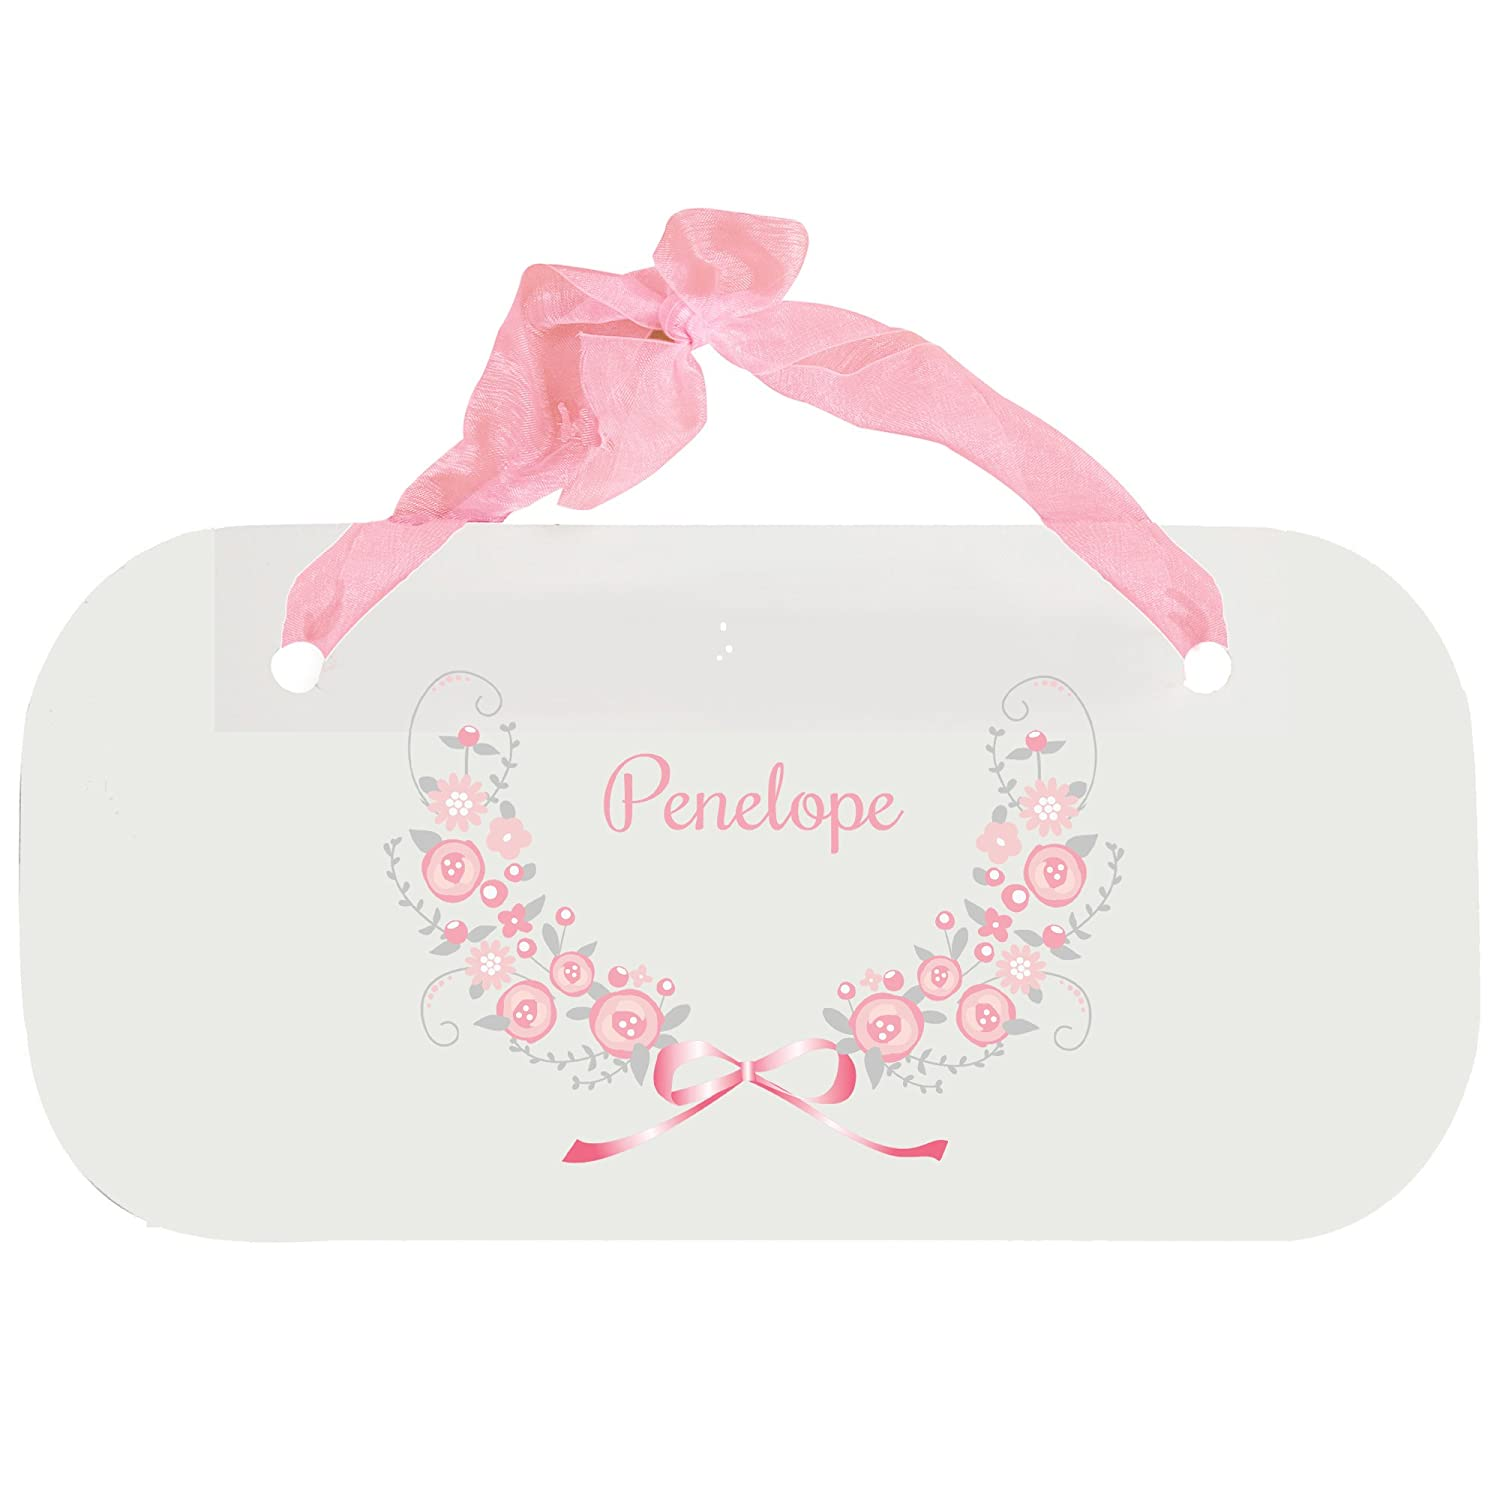 Personalized Pink Gray Floral Garland Nursery Door Hanger Plaque with pink ribbon MyBambino